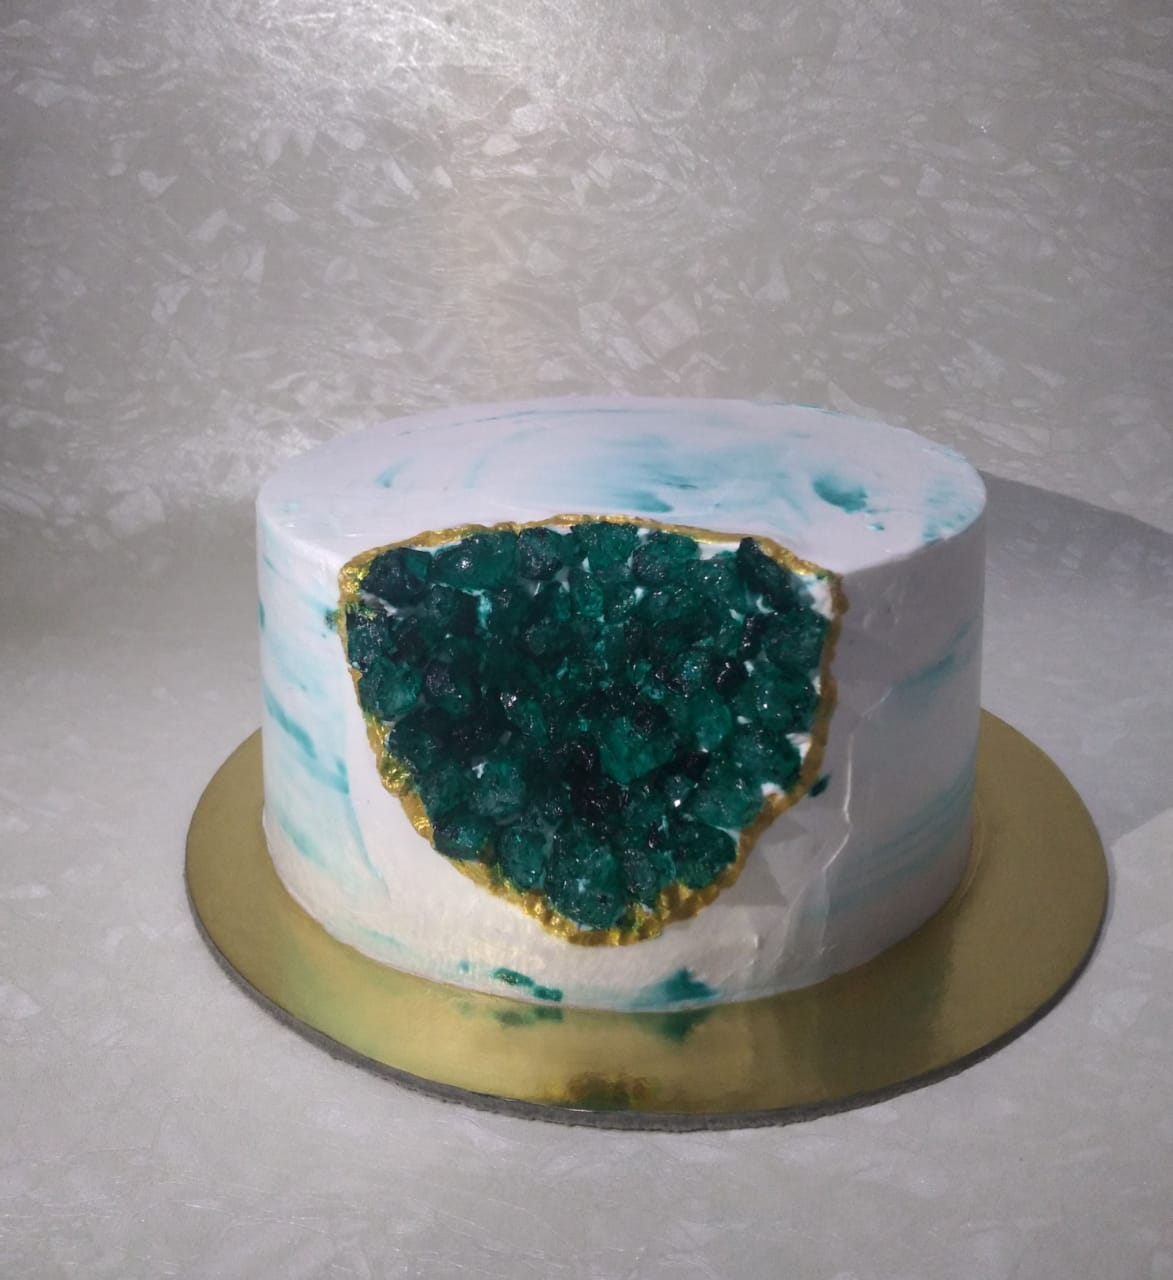 Artificial Geode (Crystal) Cake Designs, Images, Price Near Me